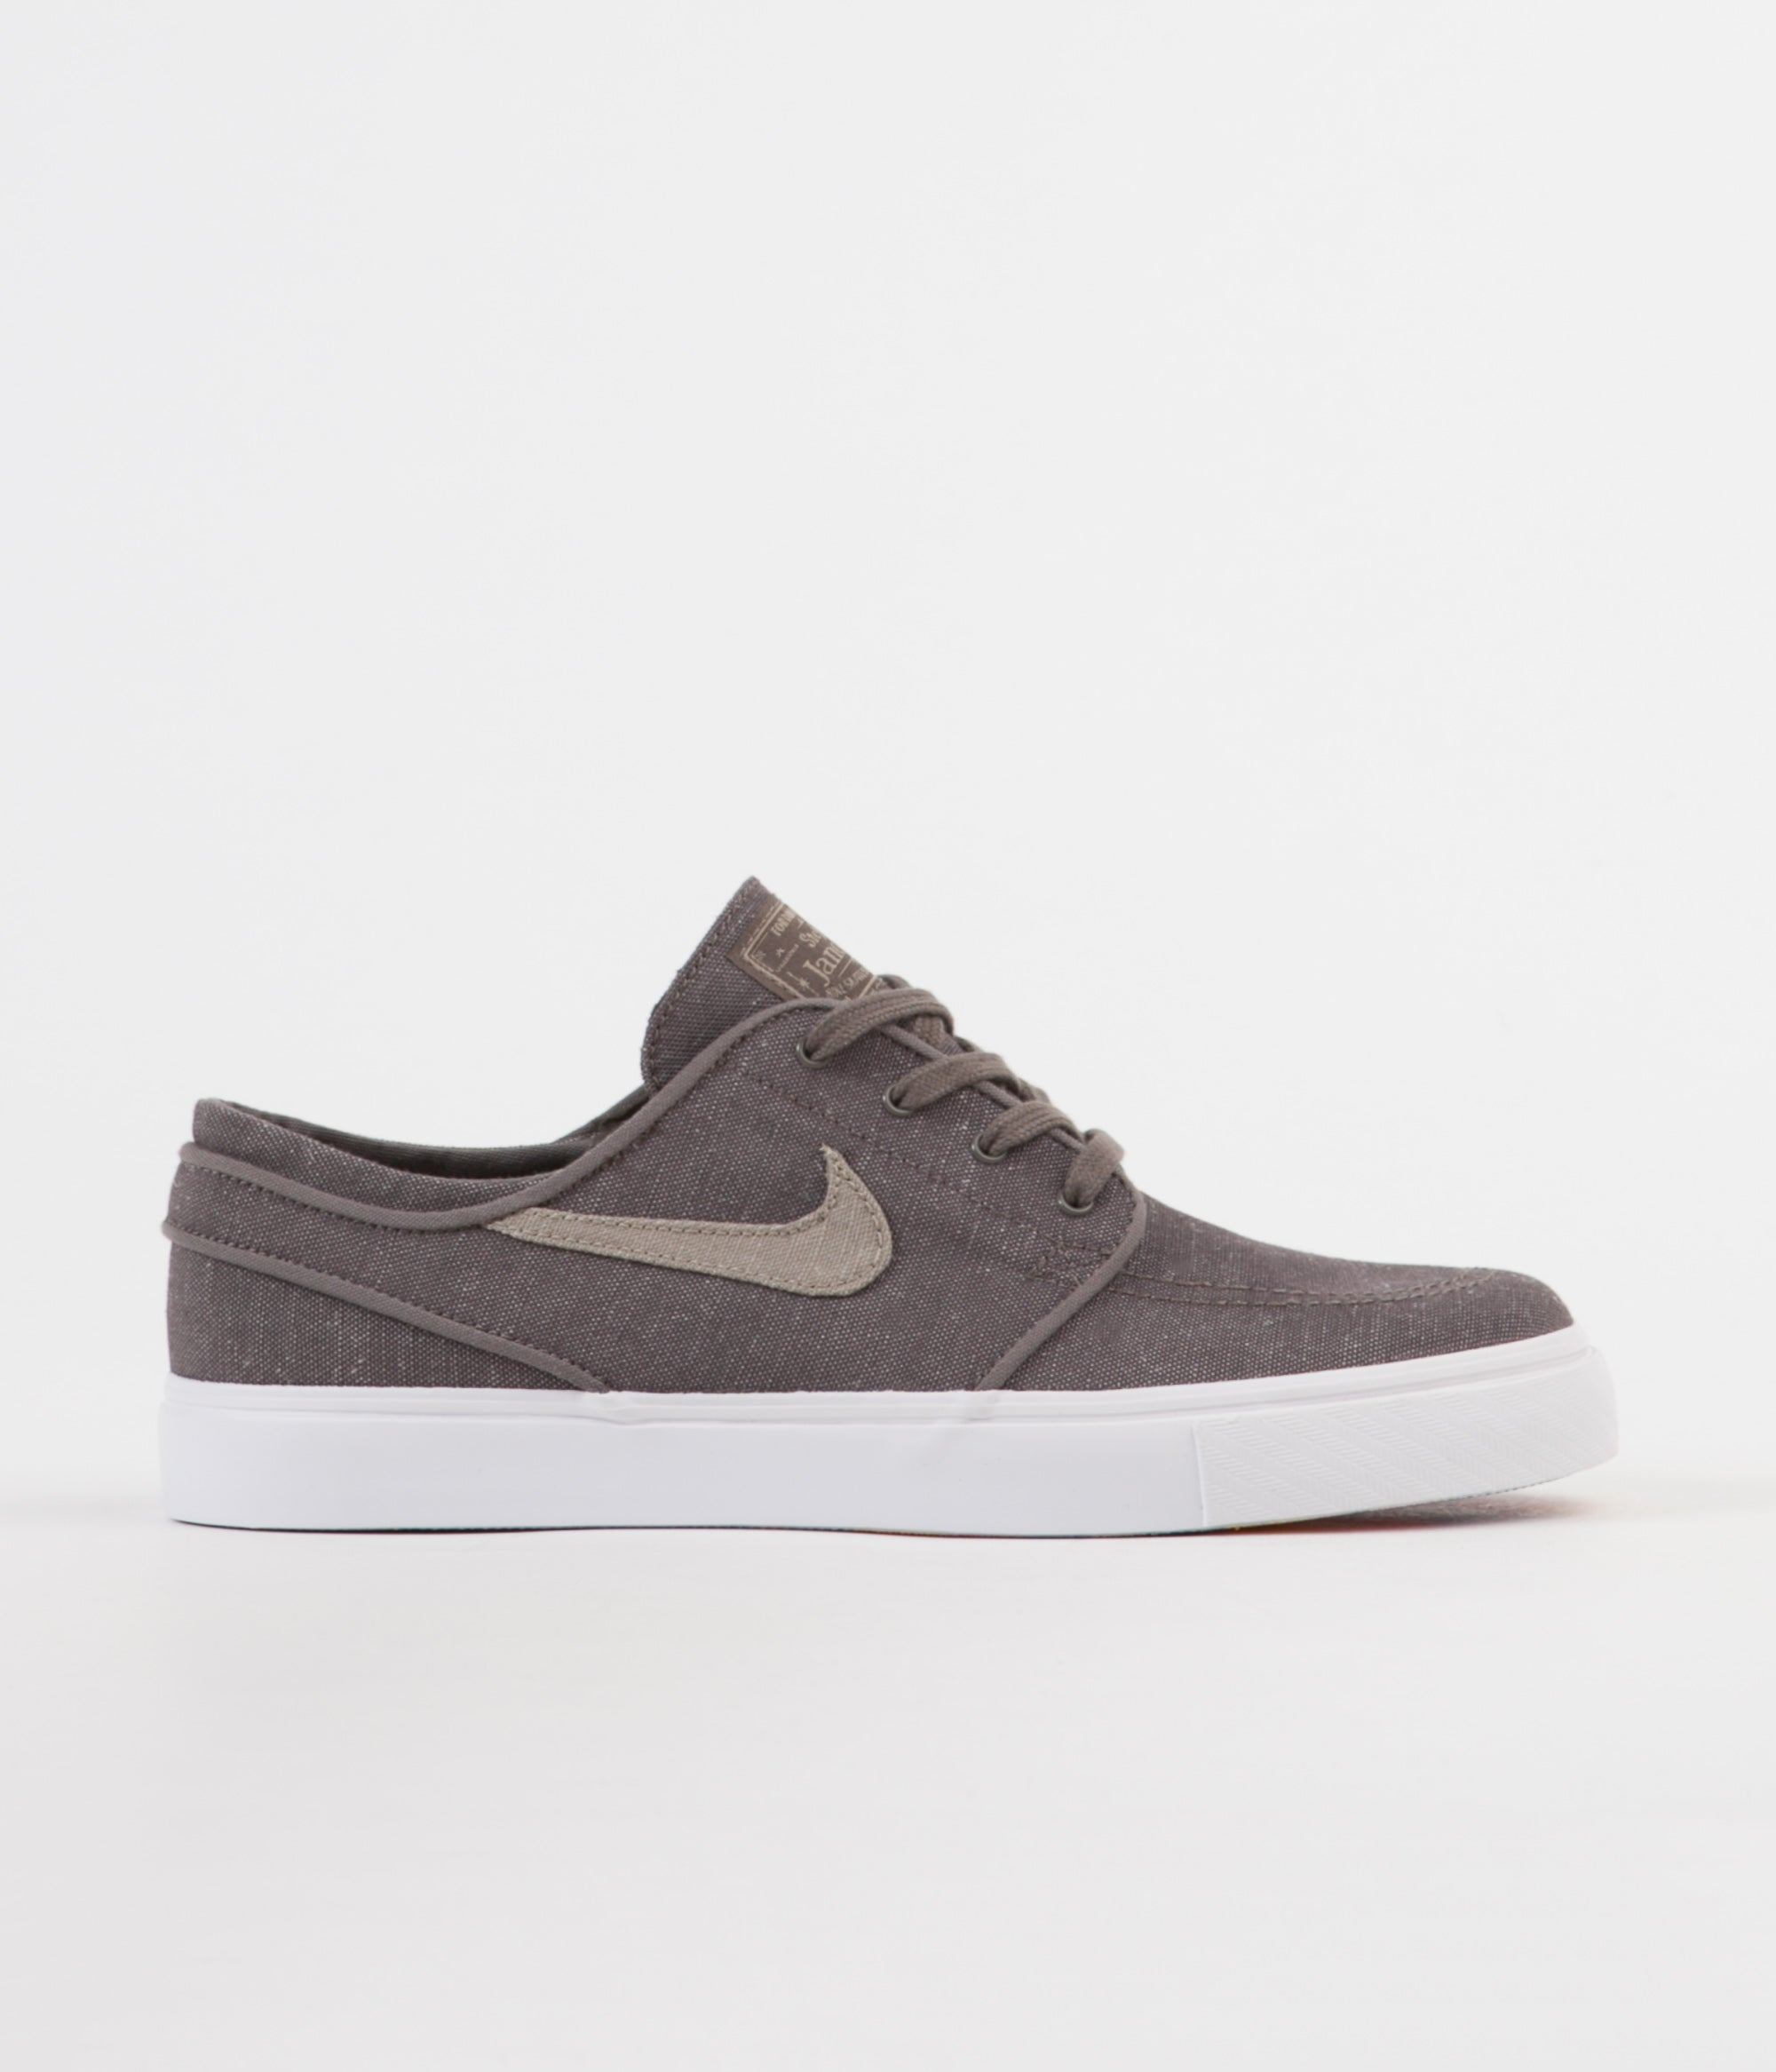 1b23e02021 Nike SB Stefan Janoski Canvas Deconstructed Shoes - Ridgerock   Khaki -  Vintage Coral